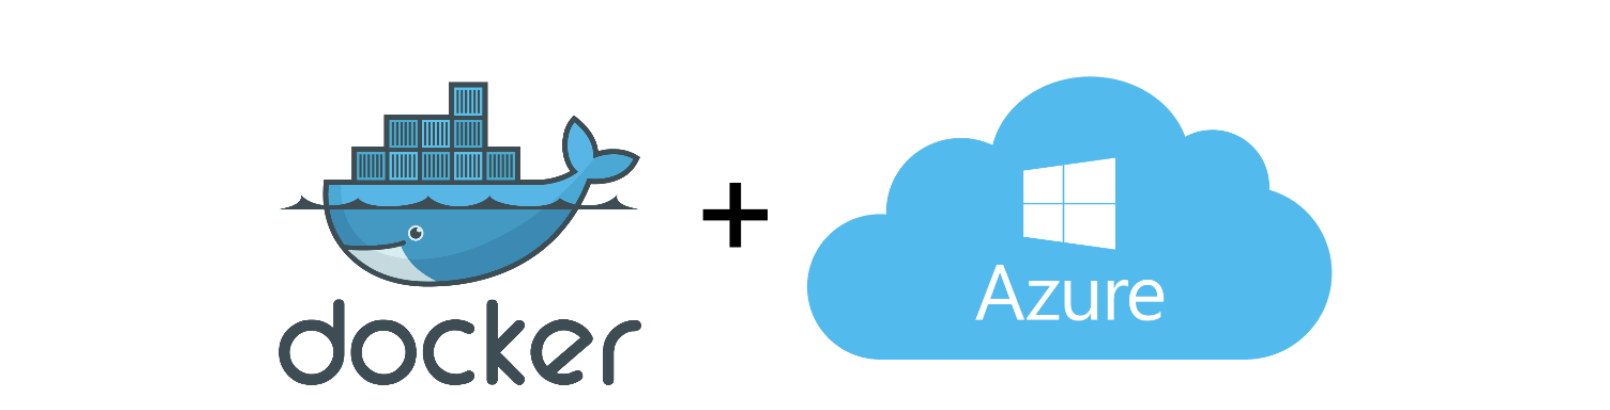 Creating Container Images (ACR) to be used with Azure